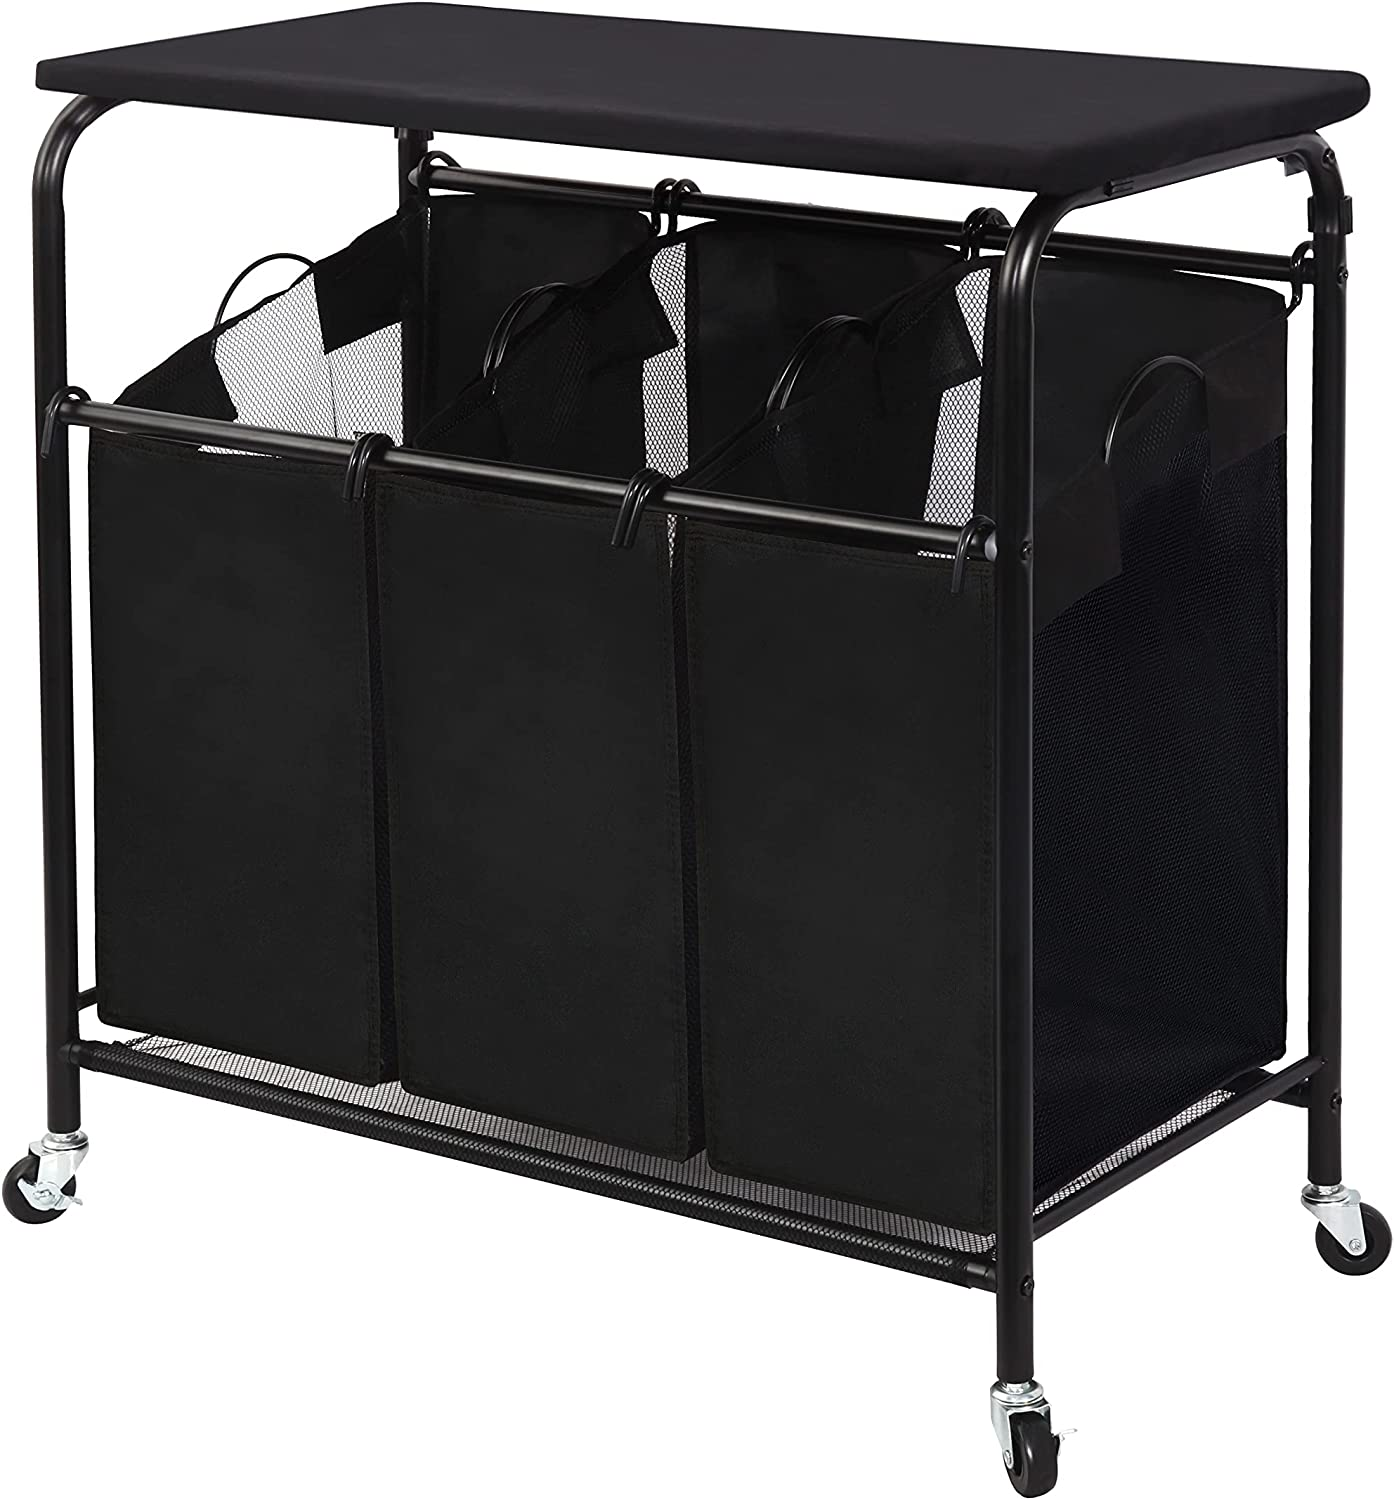 STORAGE MANIAC Regular dealer Cheap mail order specialty store 3-Section Laundry Heavy-Duty Sorter Rolling Laun